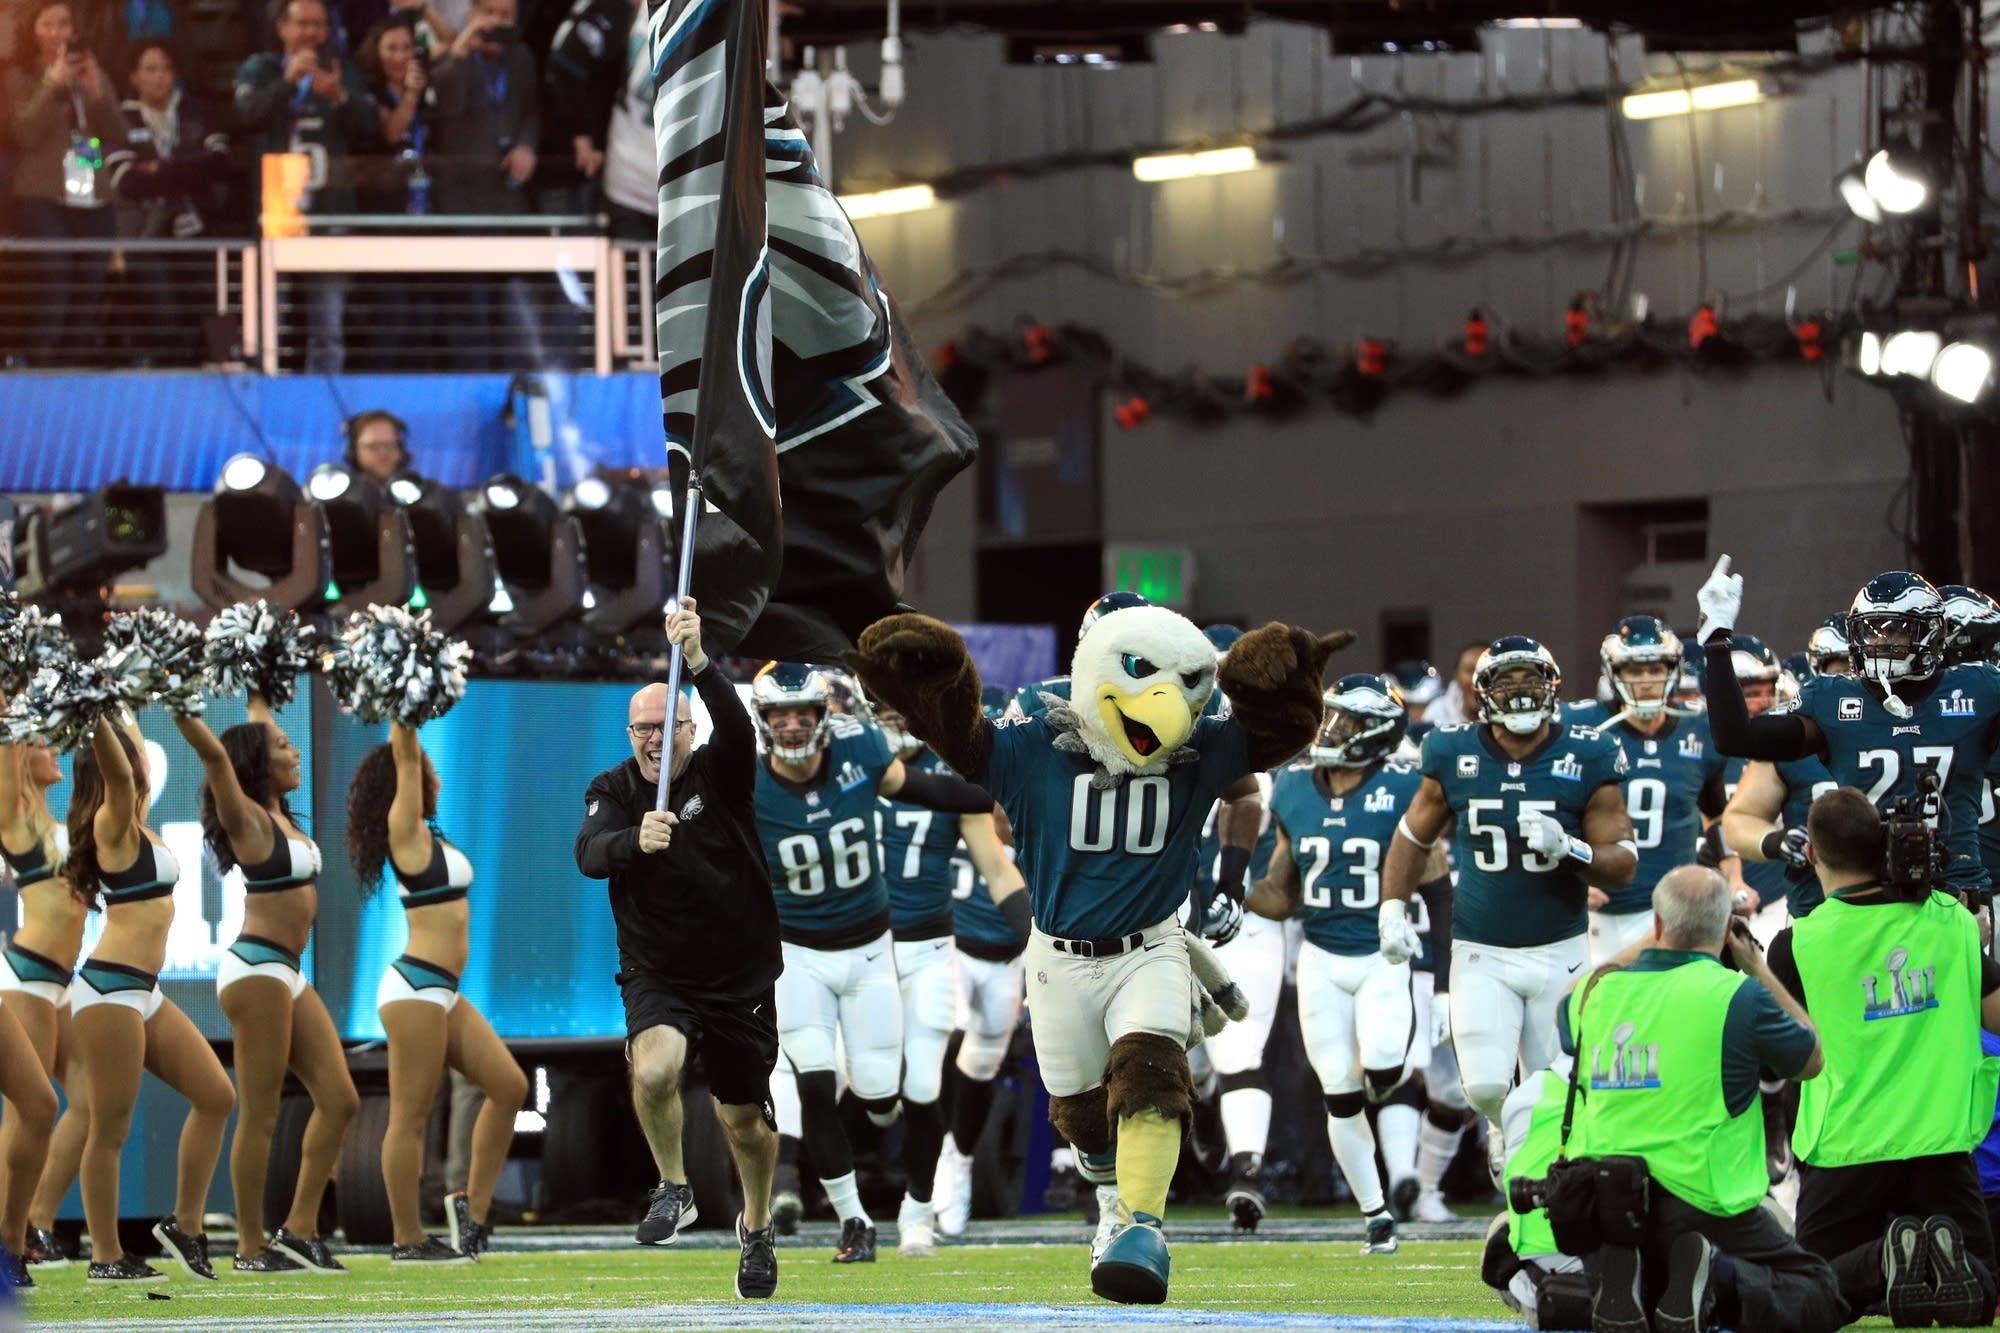 The Philadelphia Eagles take the field in Super Bowl LII.